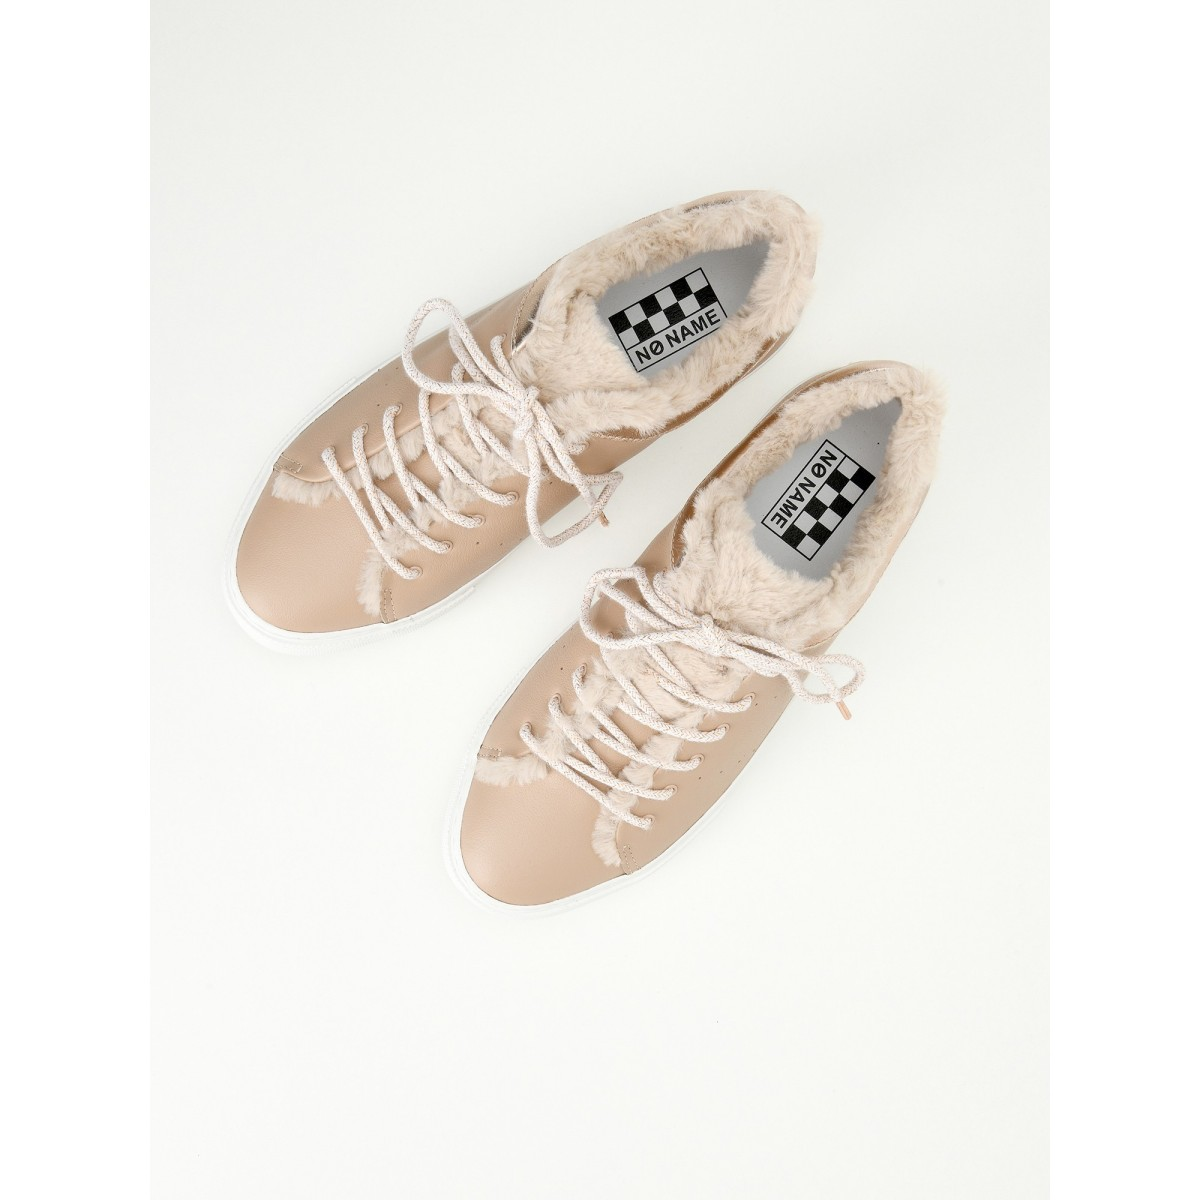 No Name ARCADE FUR SNEAKER - ALTEZZA/MERCURE - NUDE/COPPER